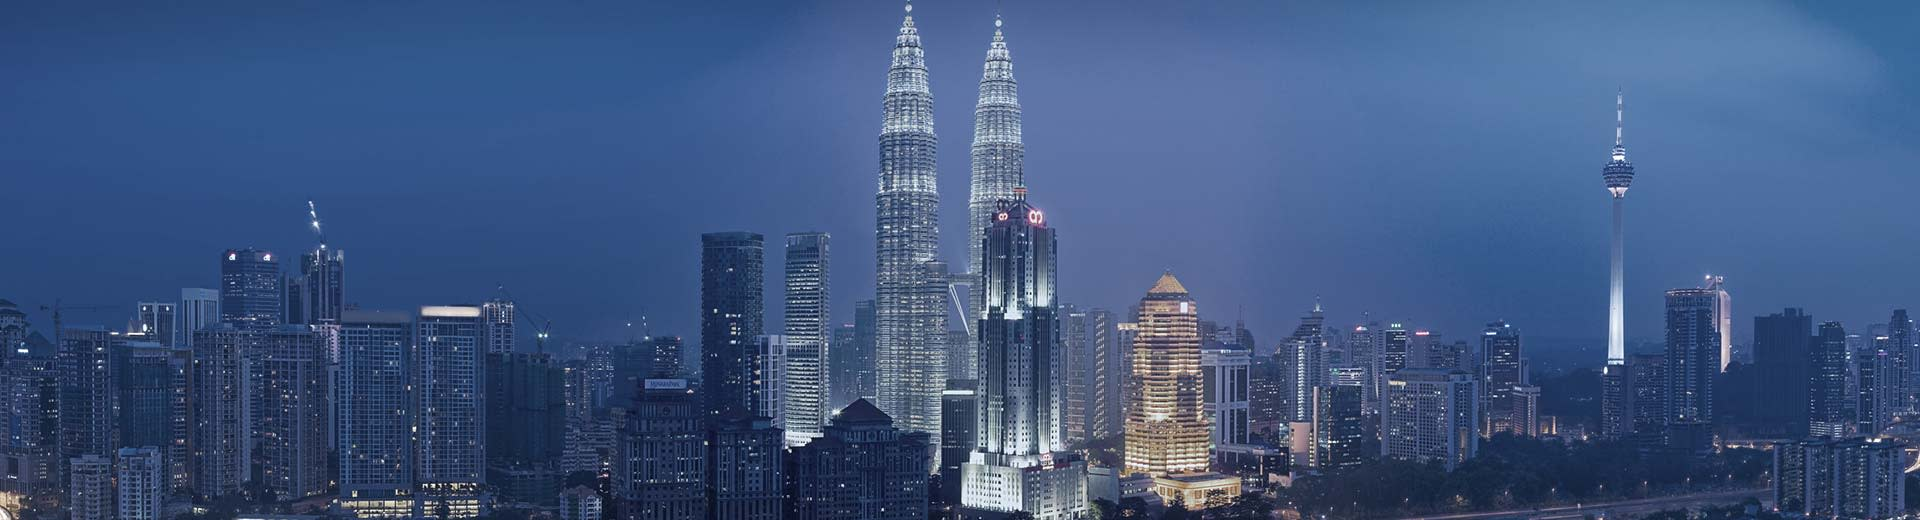 The looming twin towers of Kuala Lumpur light up the dark sky